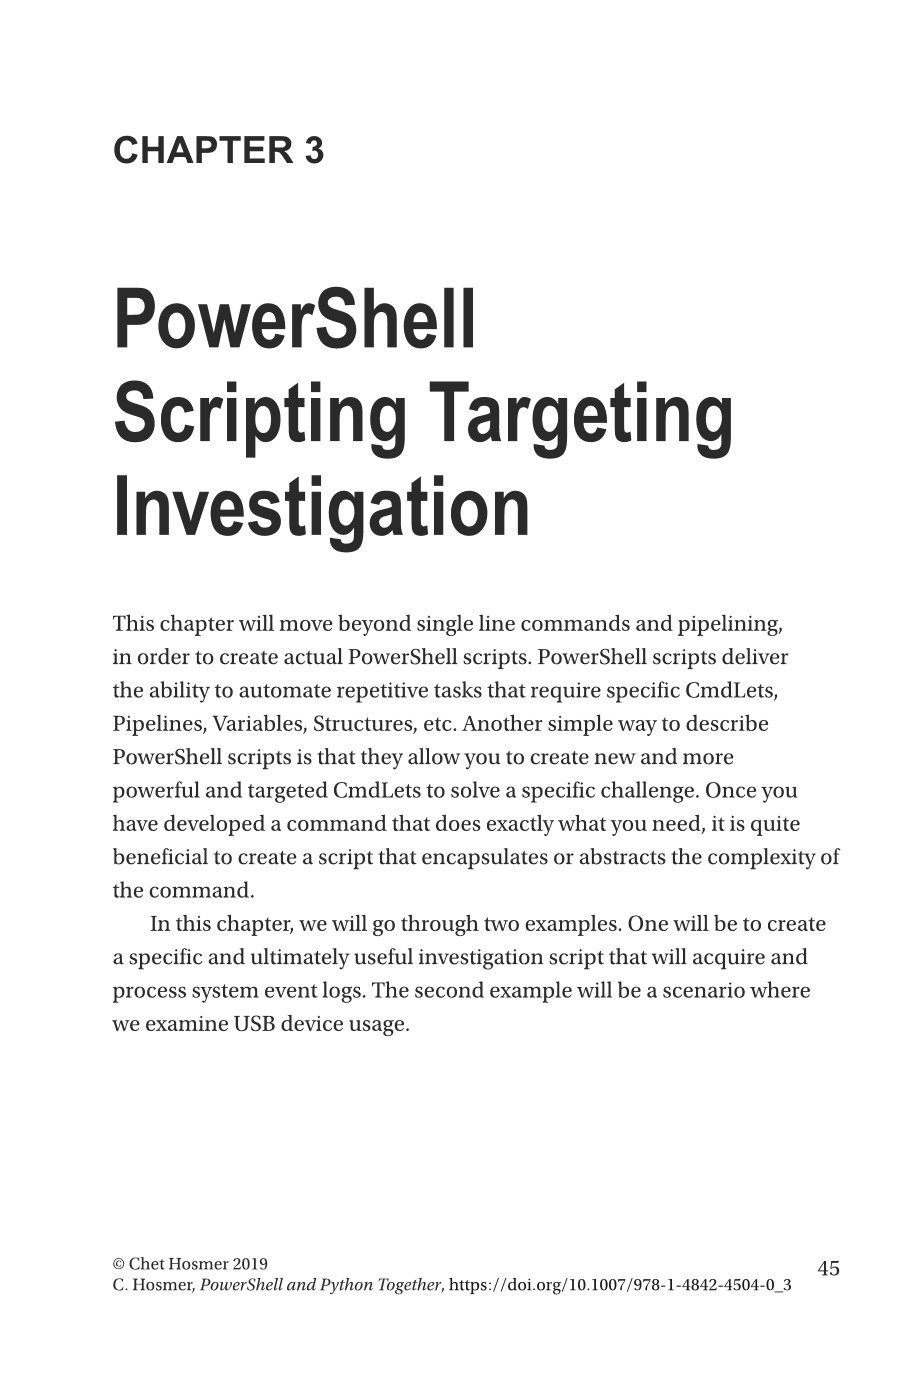 PowerShell and Python Together: Targeting Digital Investigations-preview-5